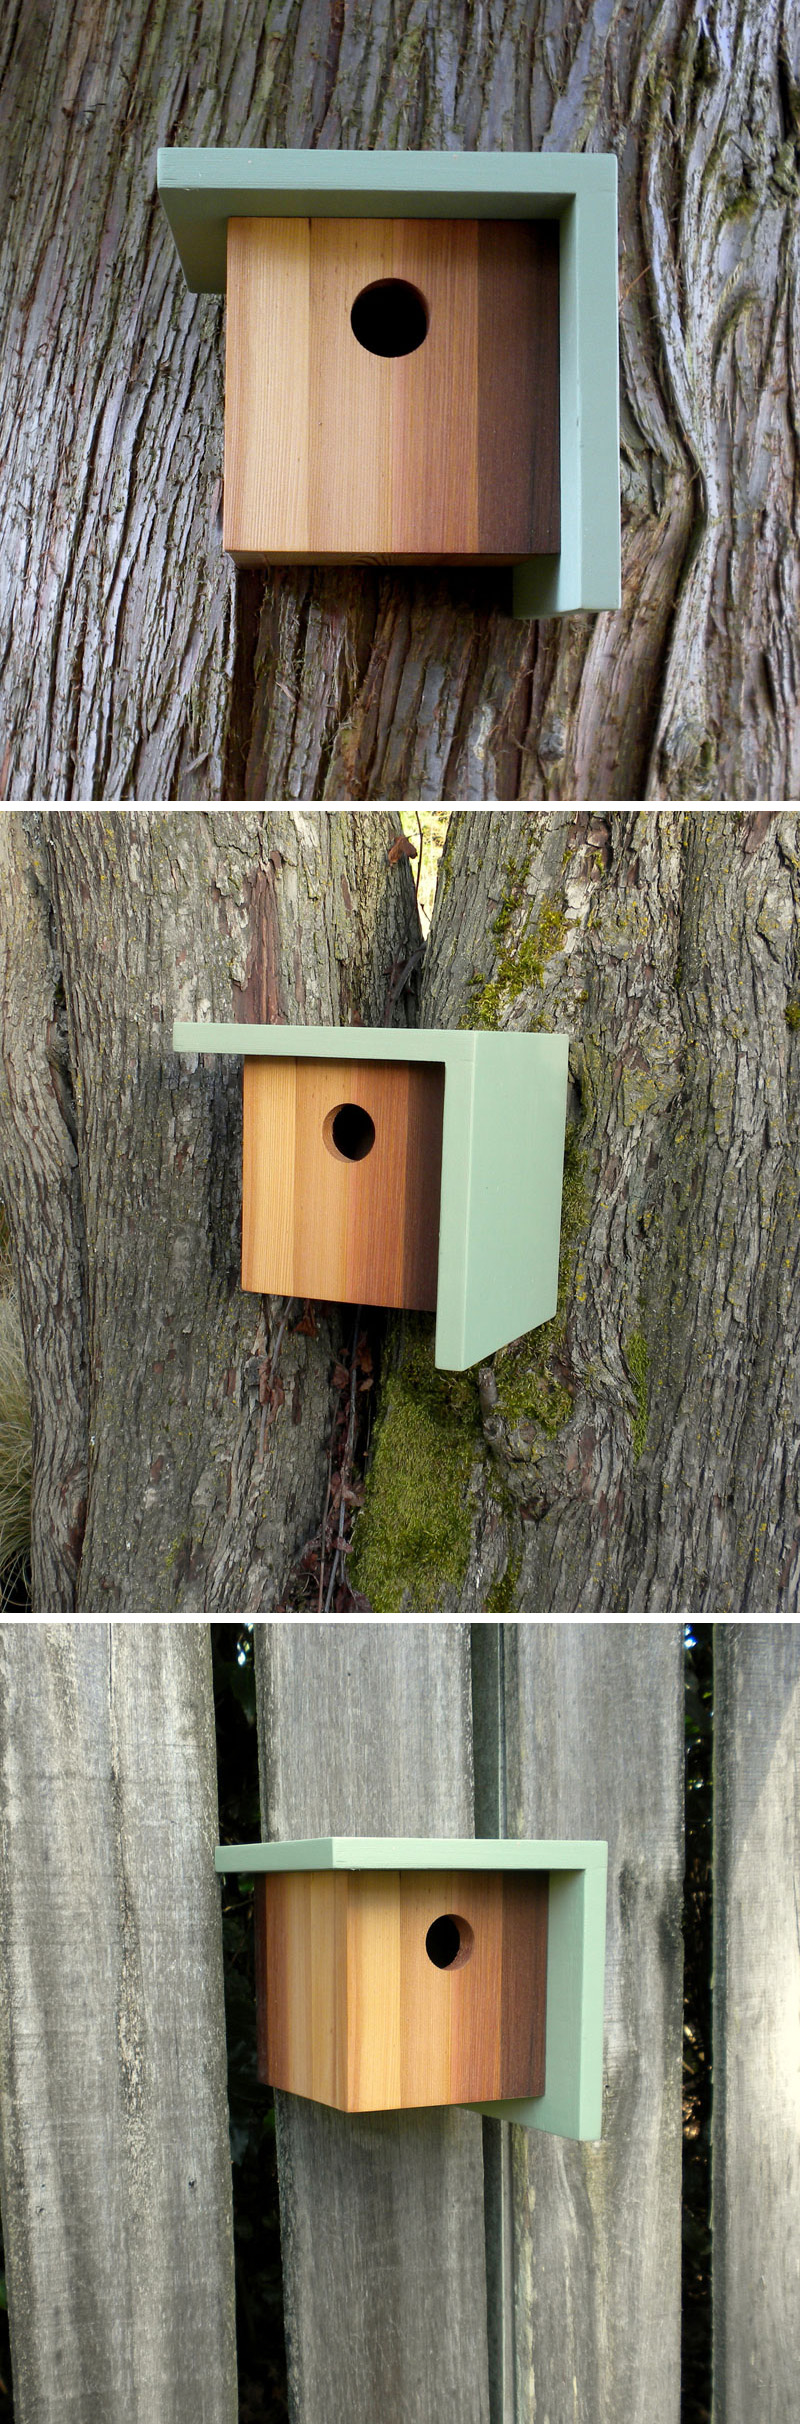 This blue, light and dark wood birdhouse is inspired by craftsman architecture.